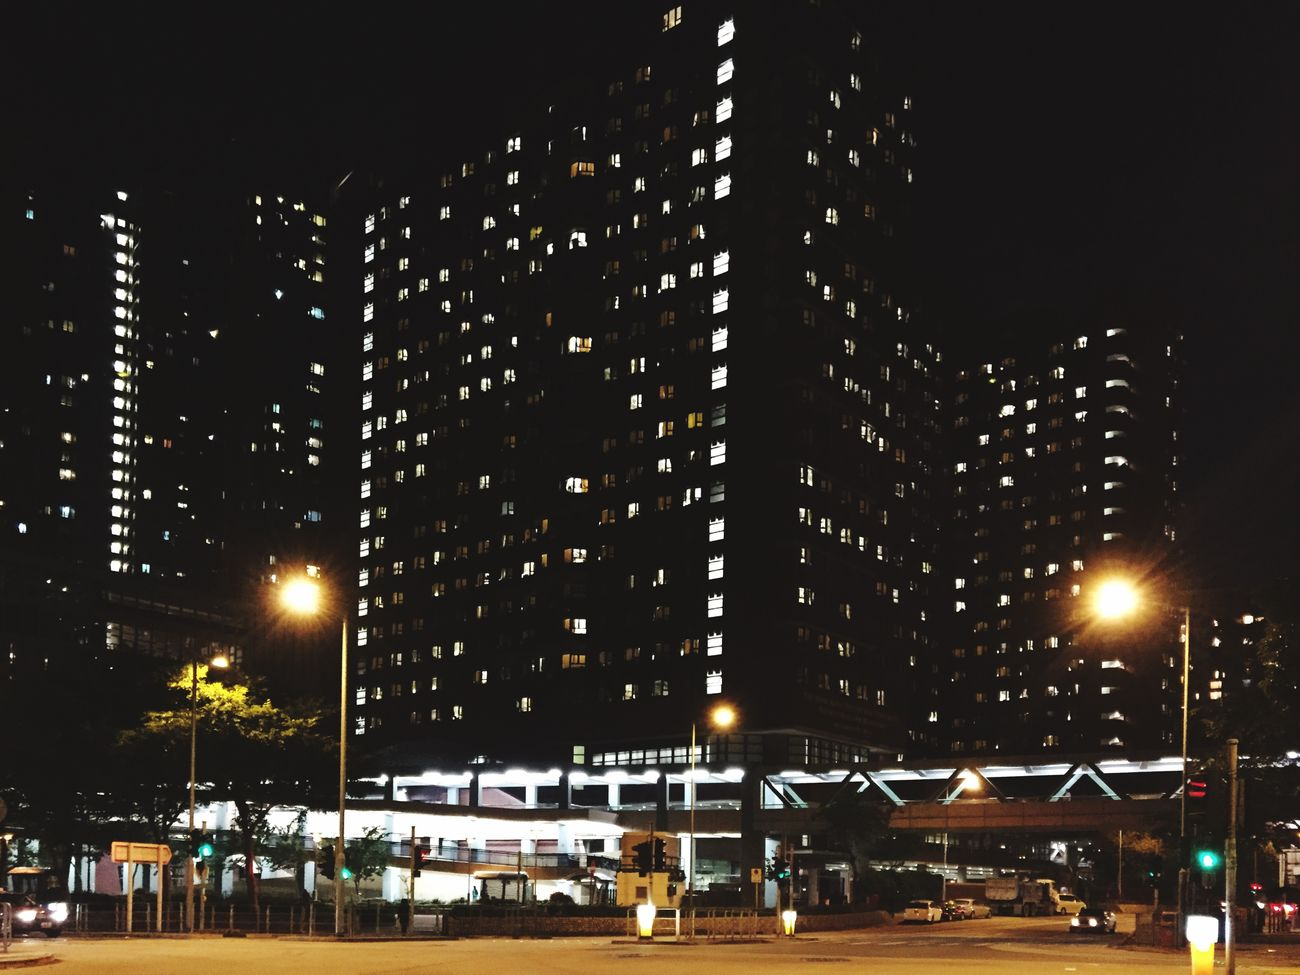 Hong Kong Hung Hom Polyu Dorm Night Lights Street Building